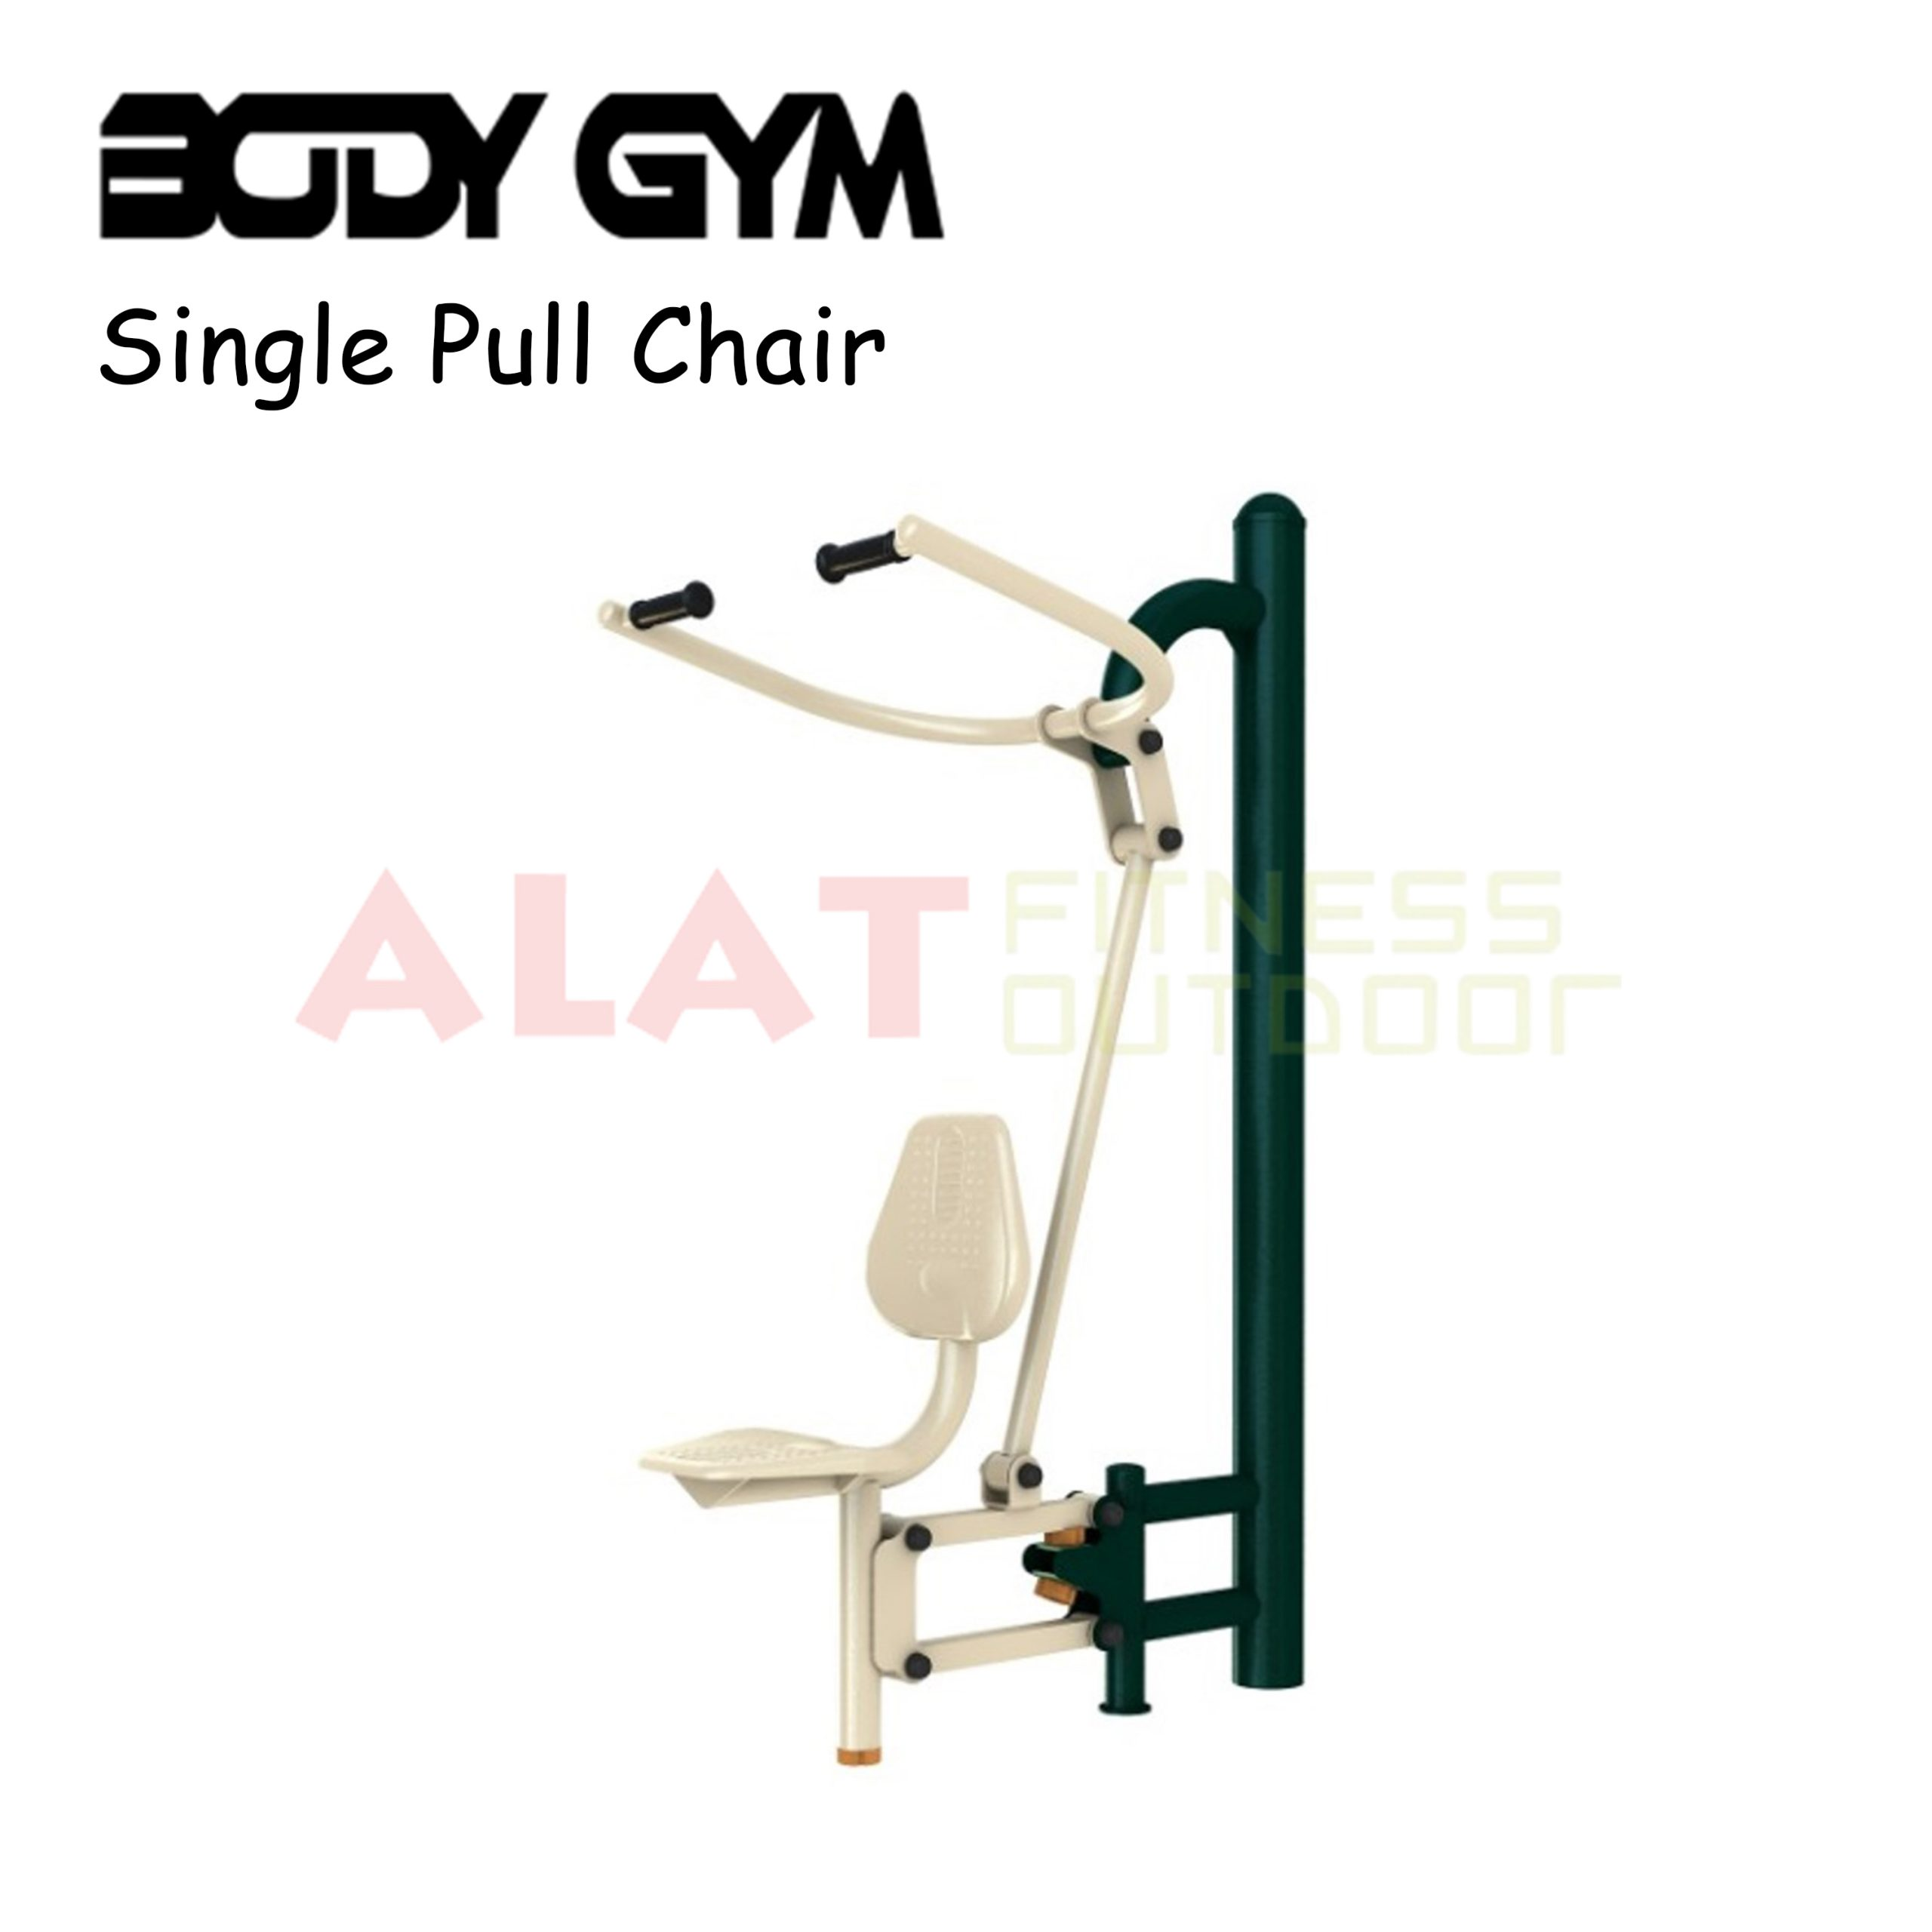 ALAT FITNESS OUTDOOR PREMIUM QUALITY AFO 40 Pull Chair scaled - Single pull Chair - Alat Fitness Outdoor Premium Quality - AFO-40